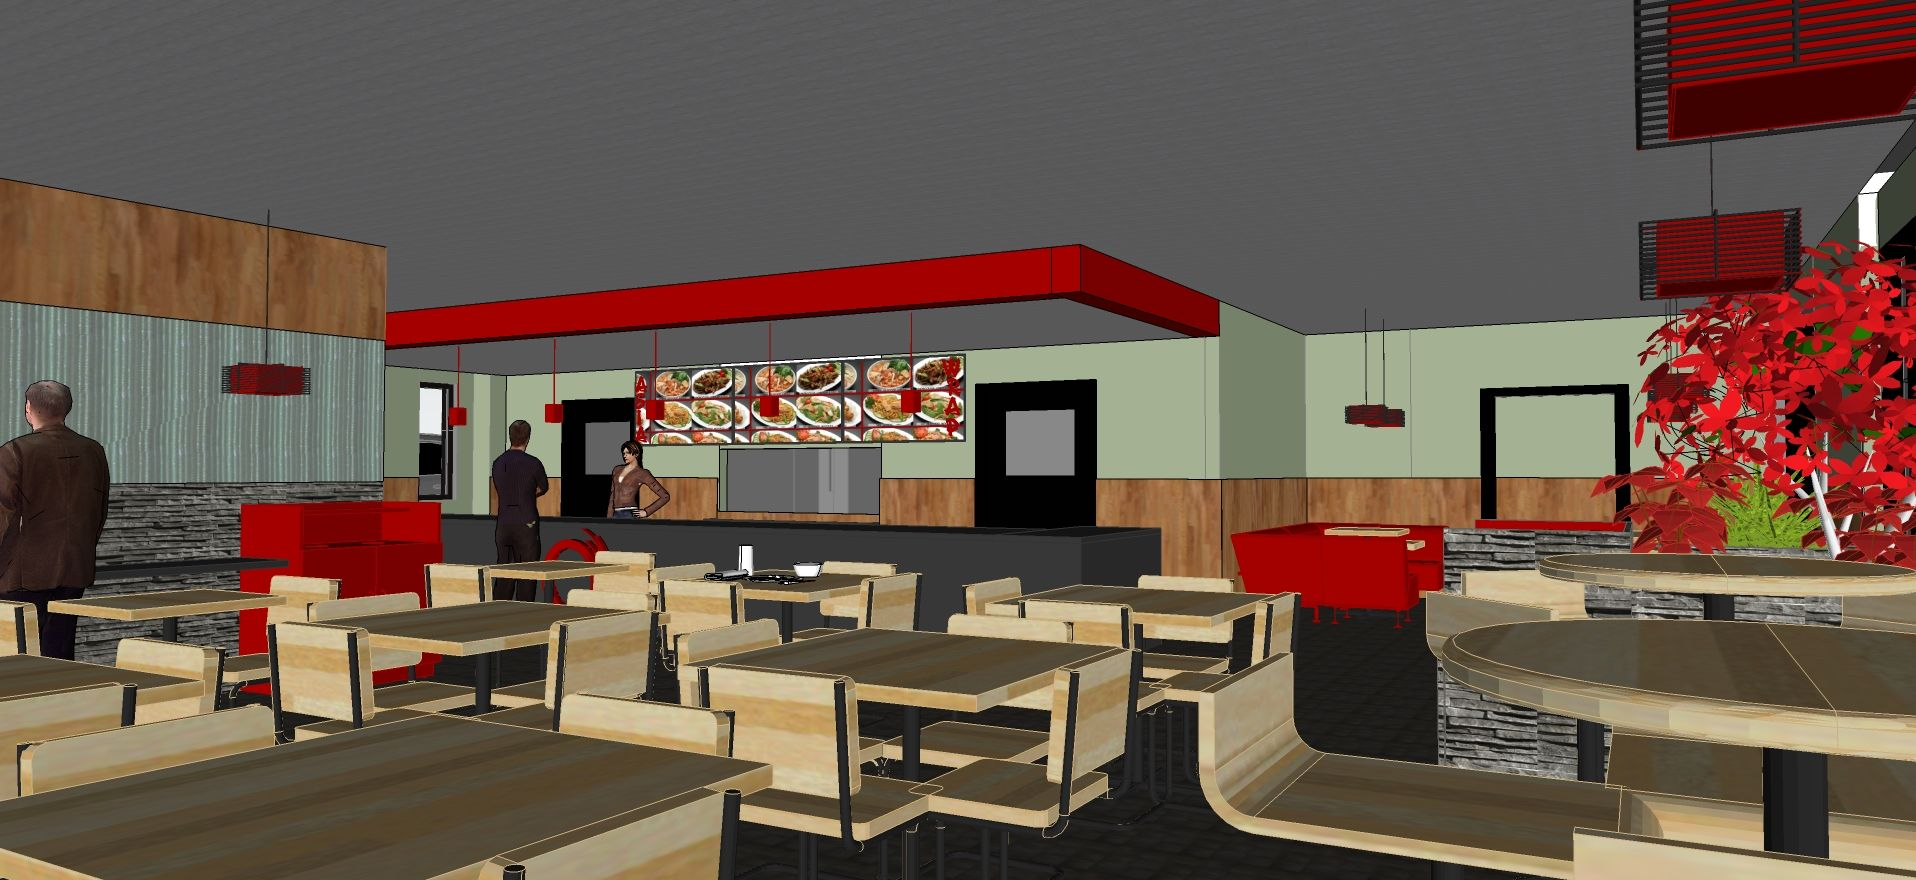 Fast food restaurant decor ideas - Explore These Ideas And More